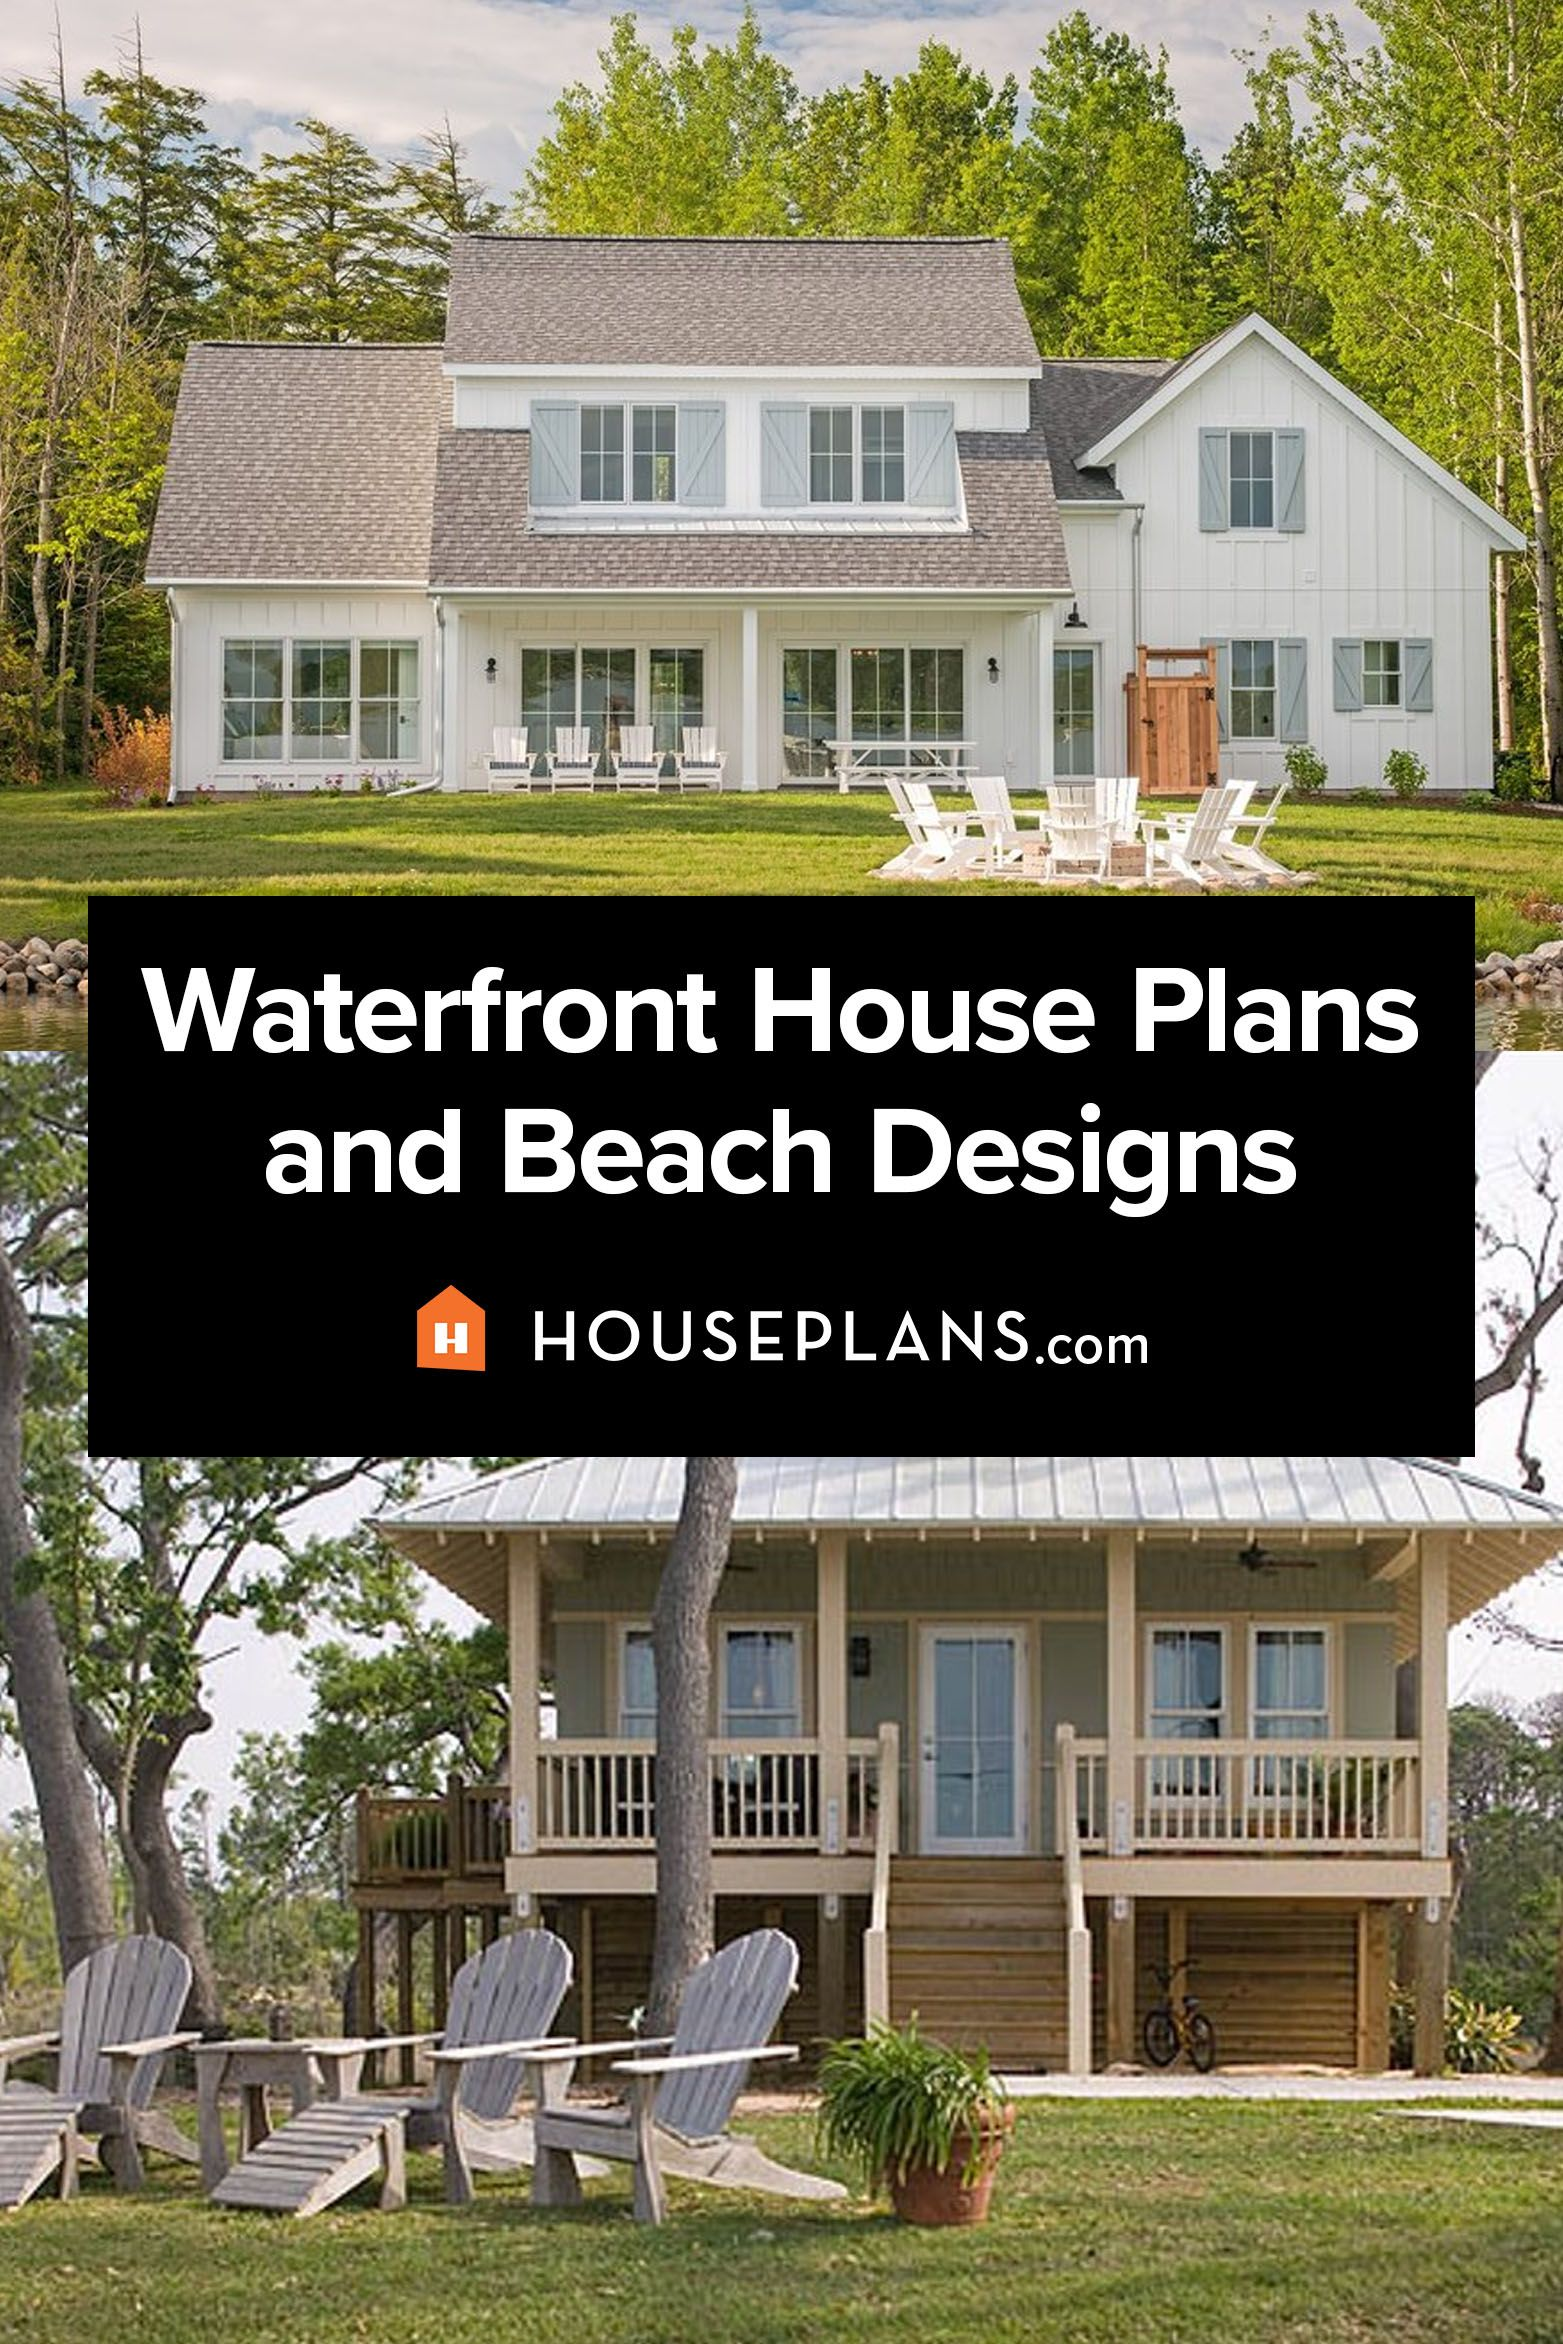 Vacation Home Plans Waterfront House Plans Collection In 2021 Beach House Plans Small Beach House Plans House Plans